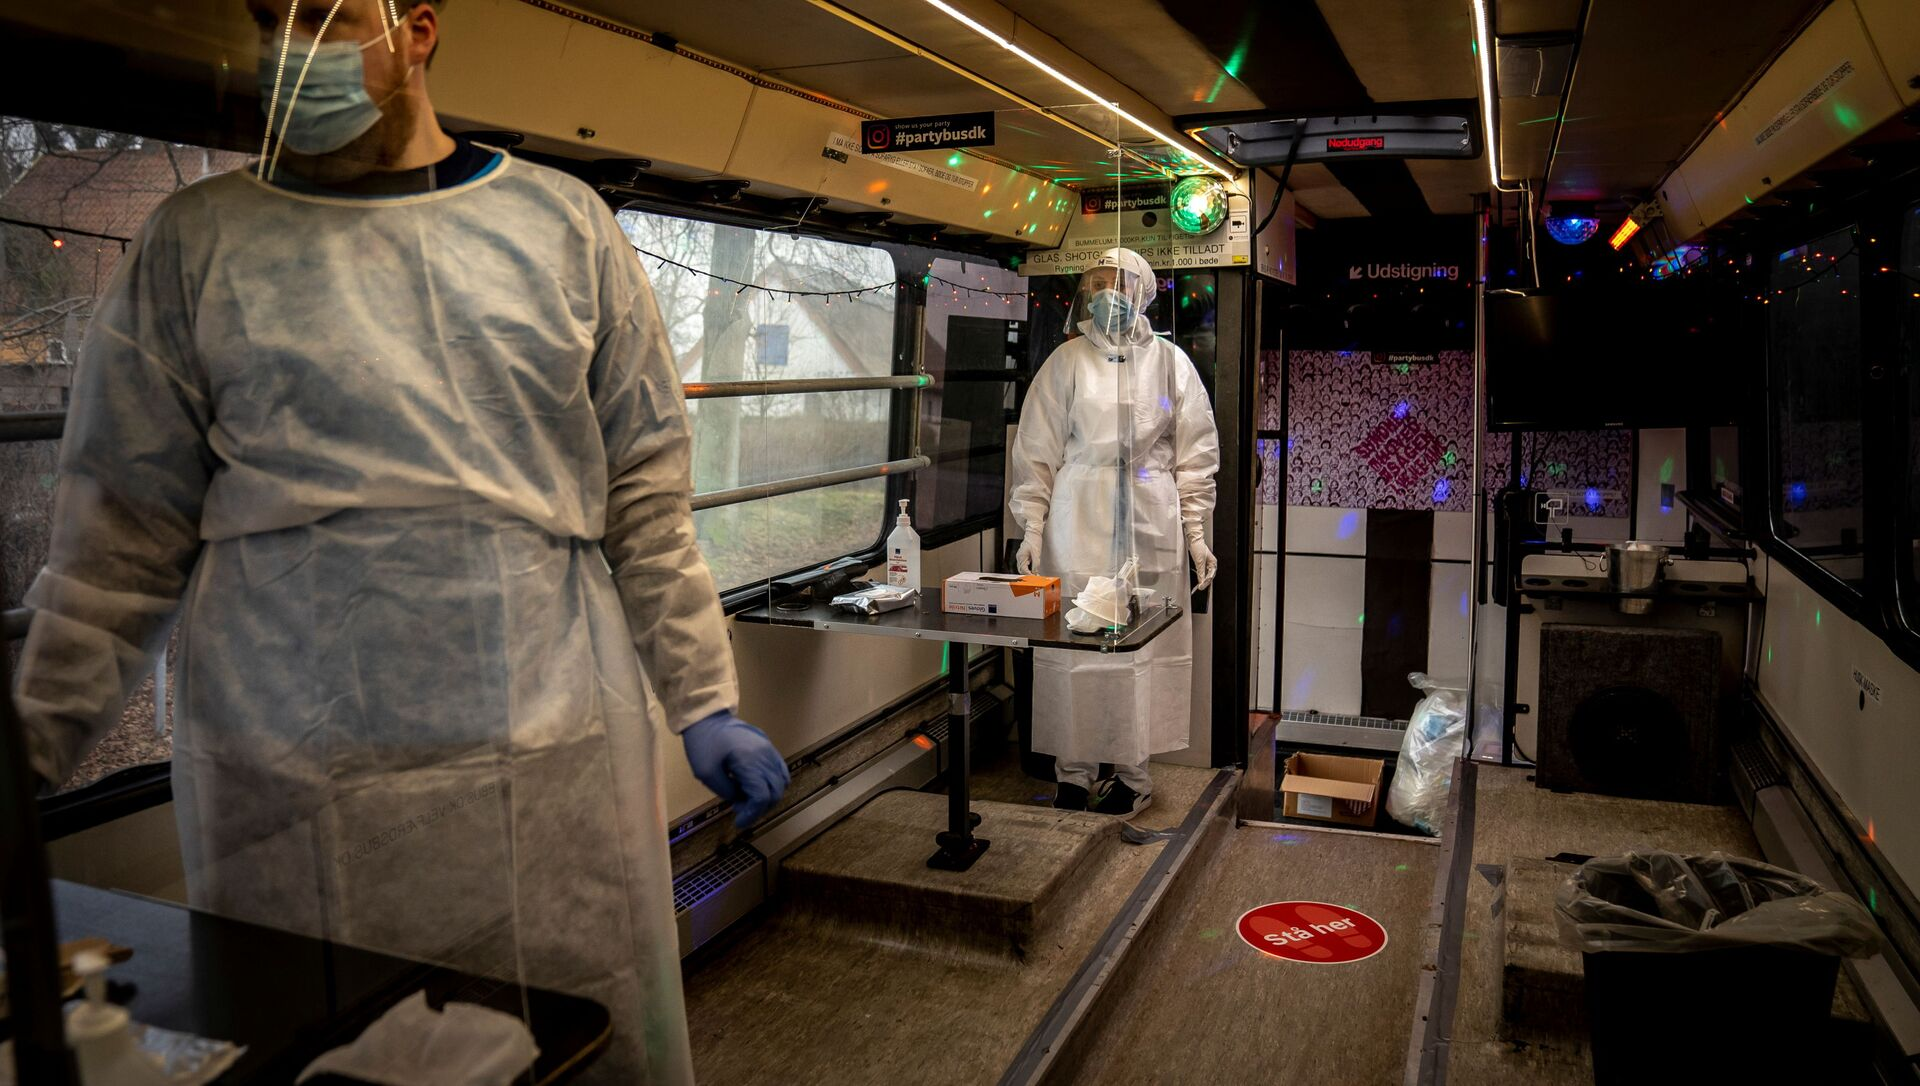 Healthcare workers wait in the Partybus, where people can listen to music while being tested for the coronavirus disease (COVID-19), in Ishoej, Denmark February 23, 2021 - Sputnik International, 1920, 27.07.2021